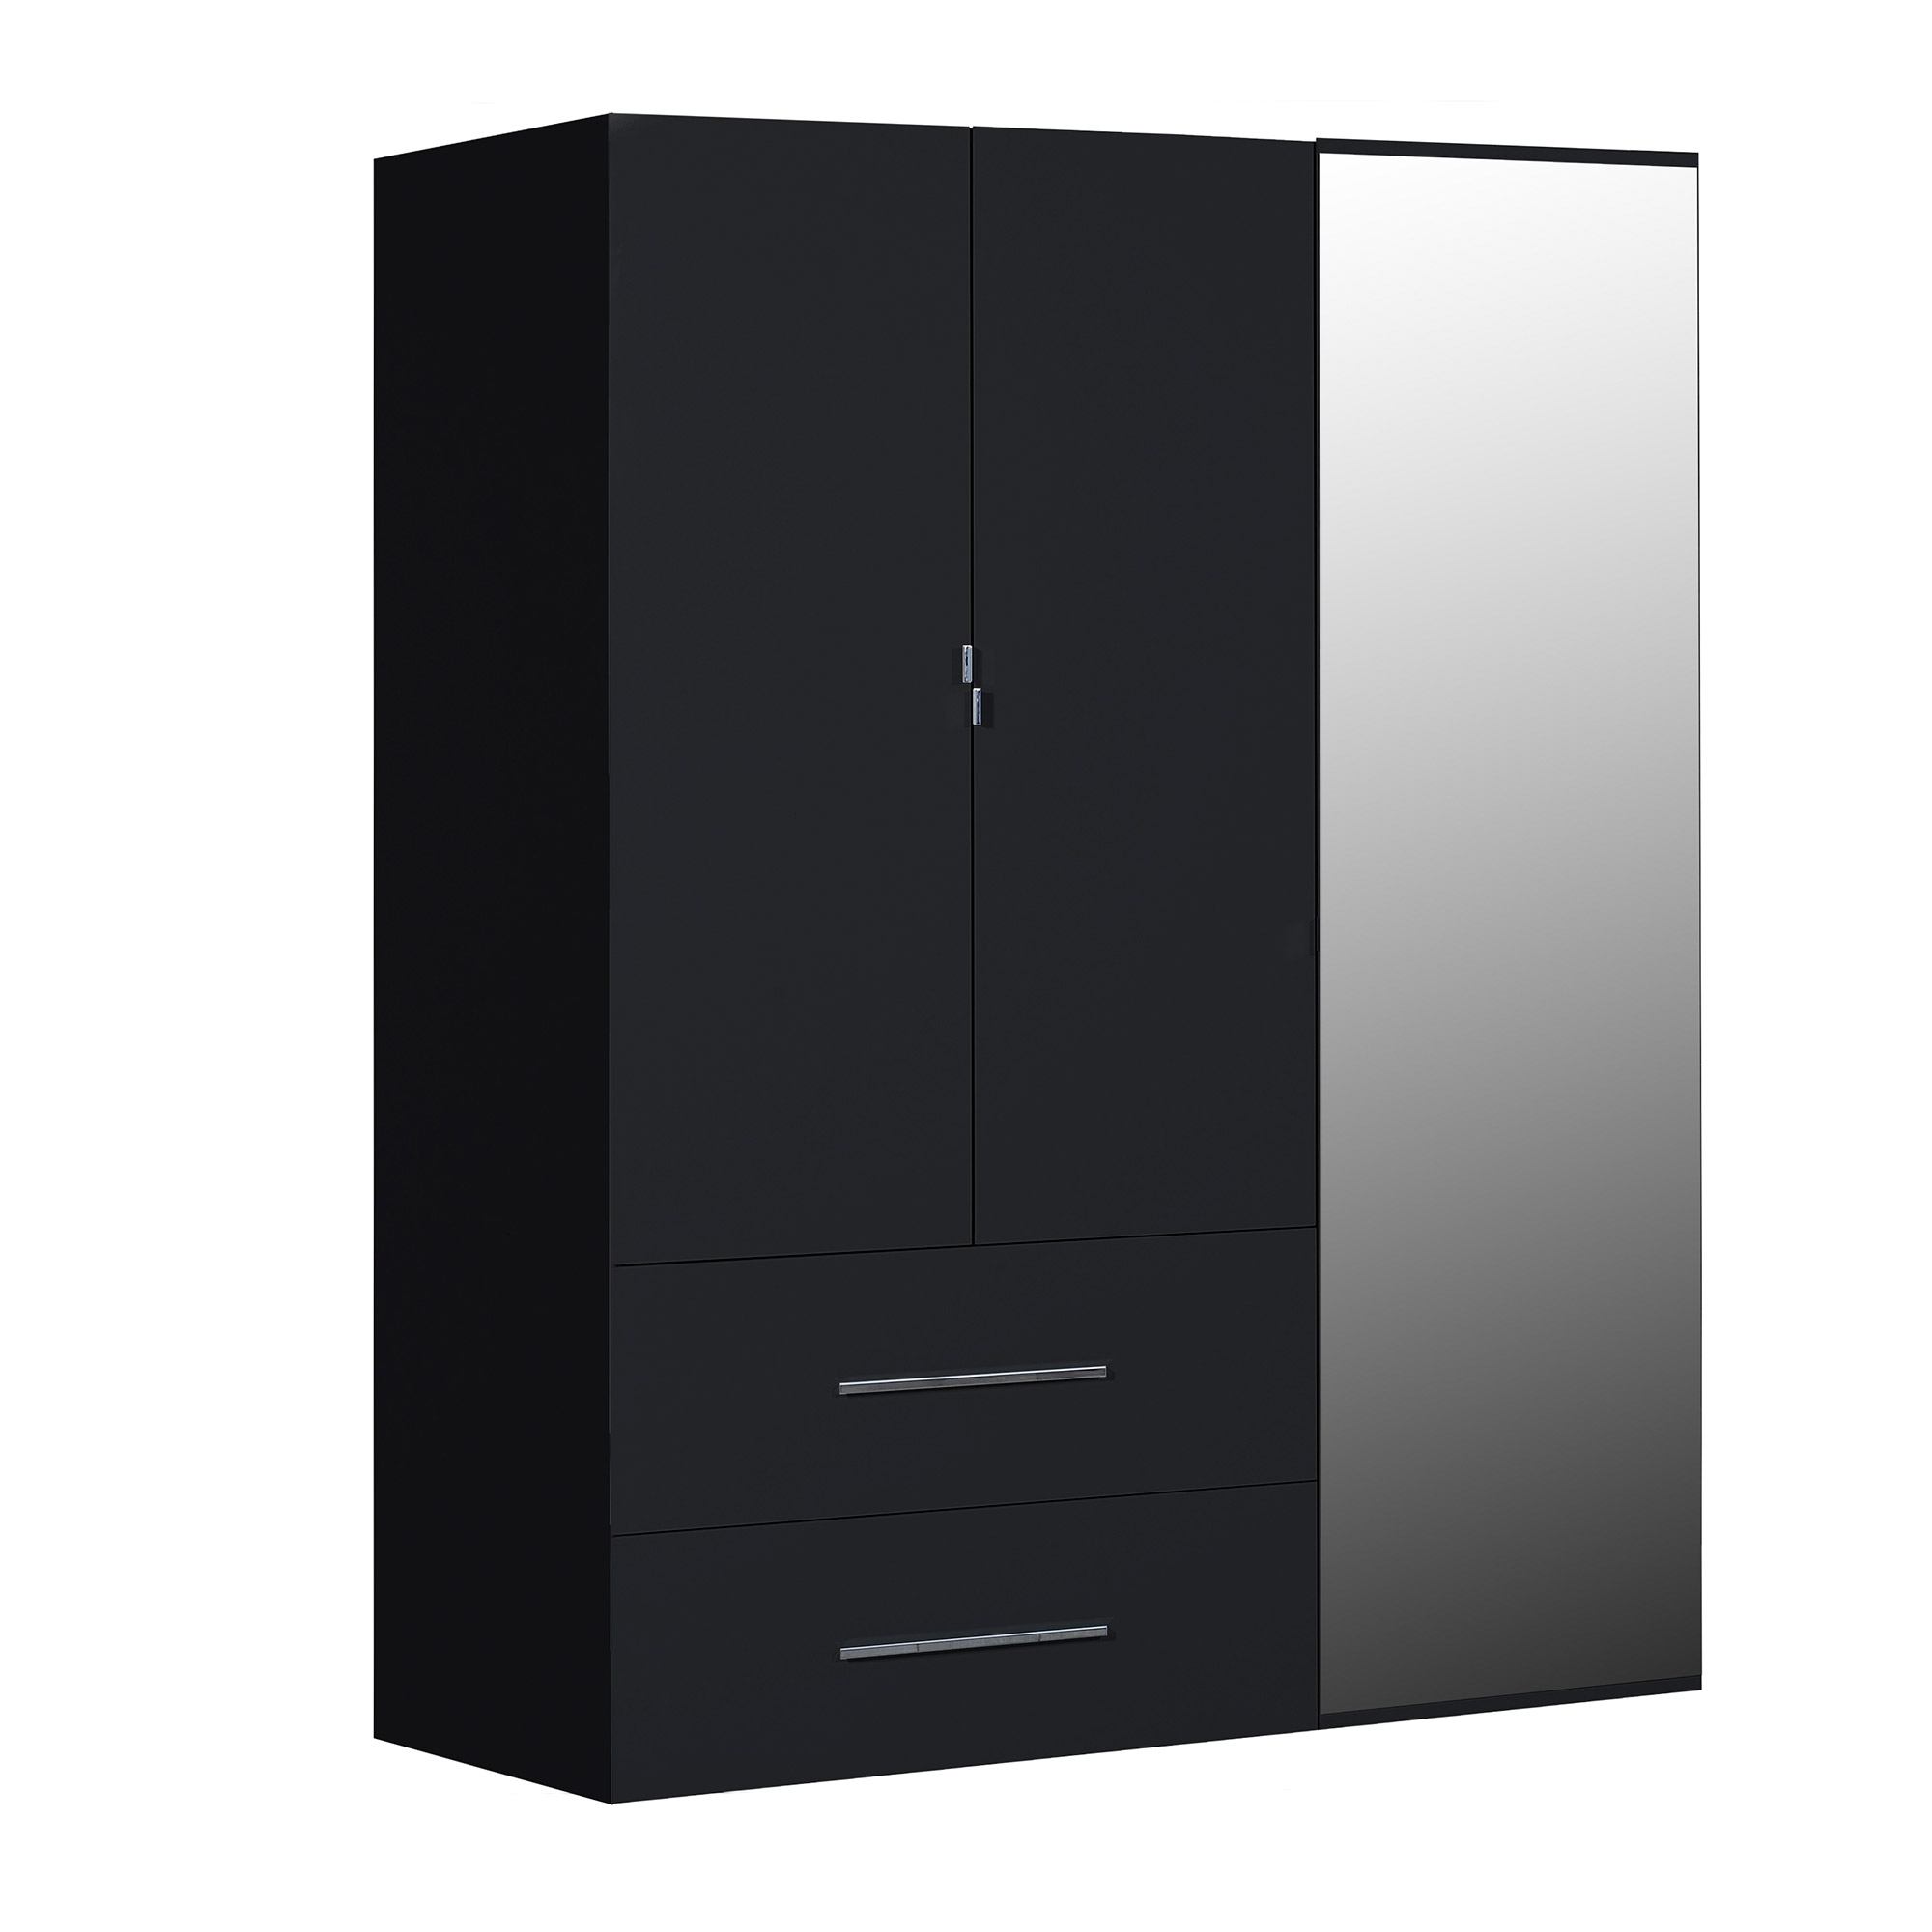 Armoire fly 2 portes coulissantes valdiz for Armoire conforama 3 portes coulissantes